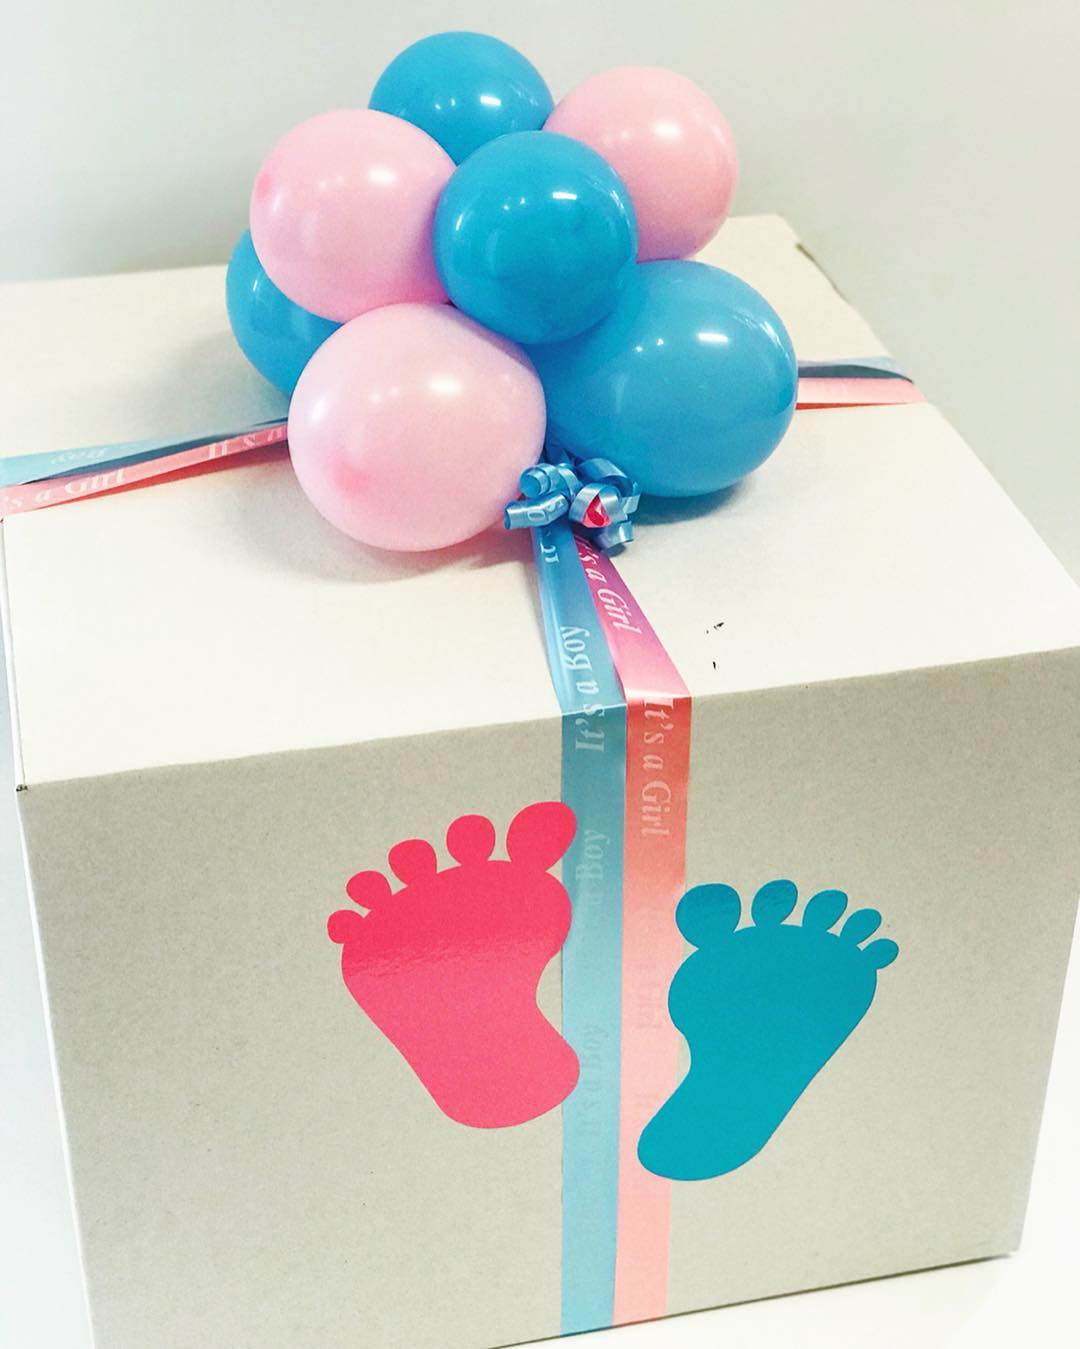 How to plan gender reveal party?